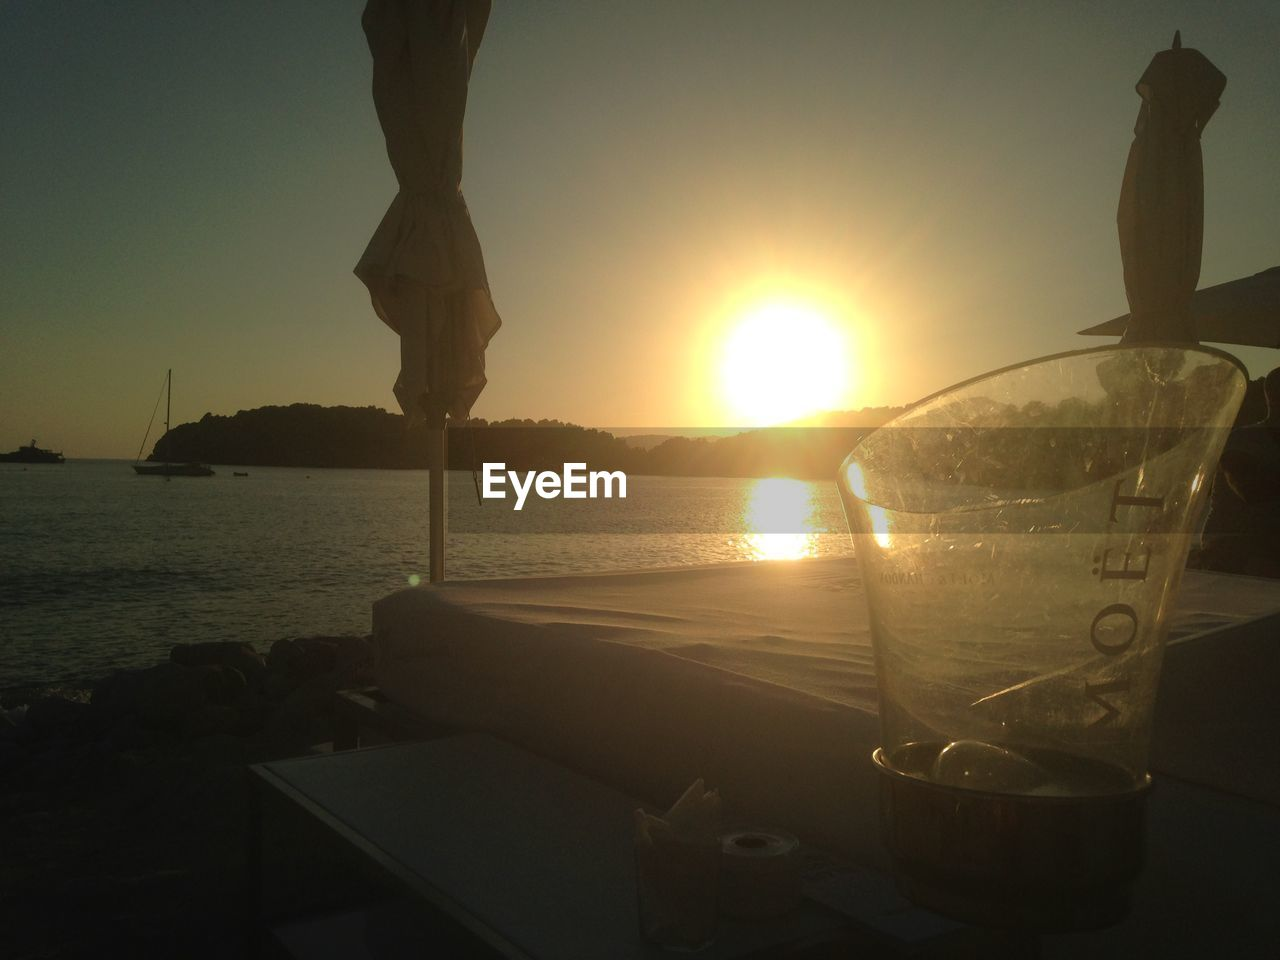 sunset, sun, sea, sunlight, water, beauty in nature, nature, scenics, outdoors, sky, drink, vacations, silhouette, no people, alcohol, clear sky, nautical vessel, close-up, day